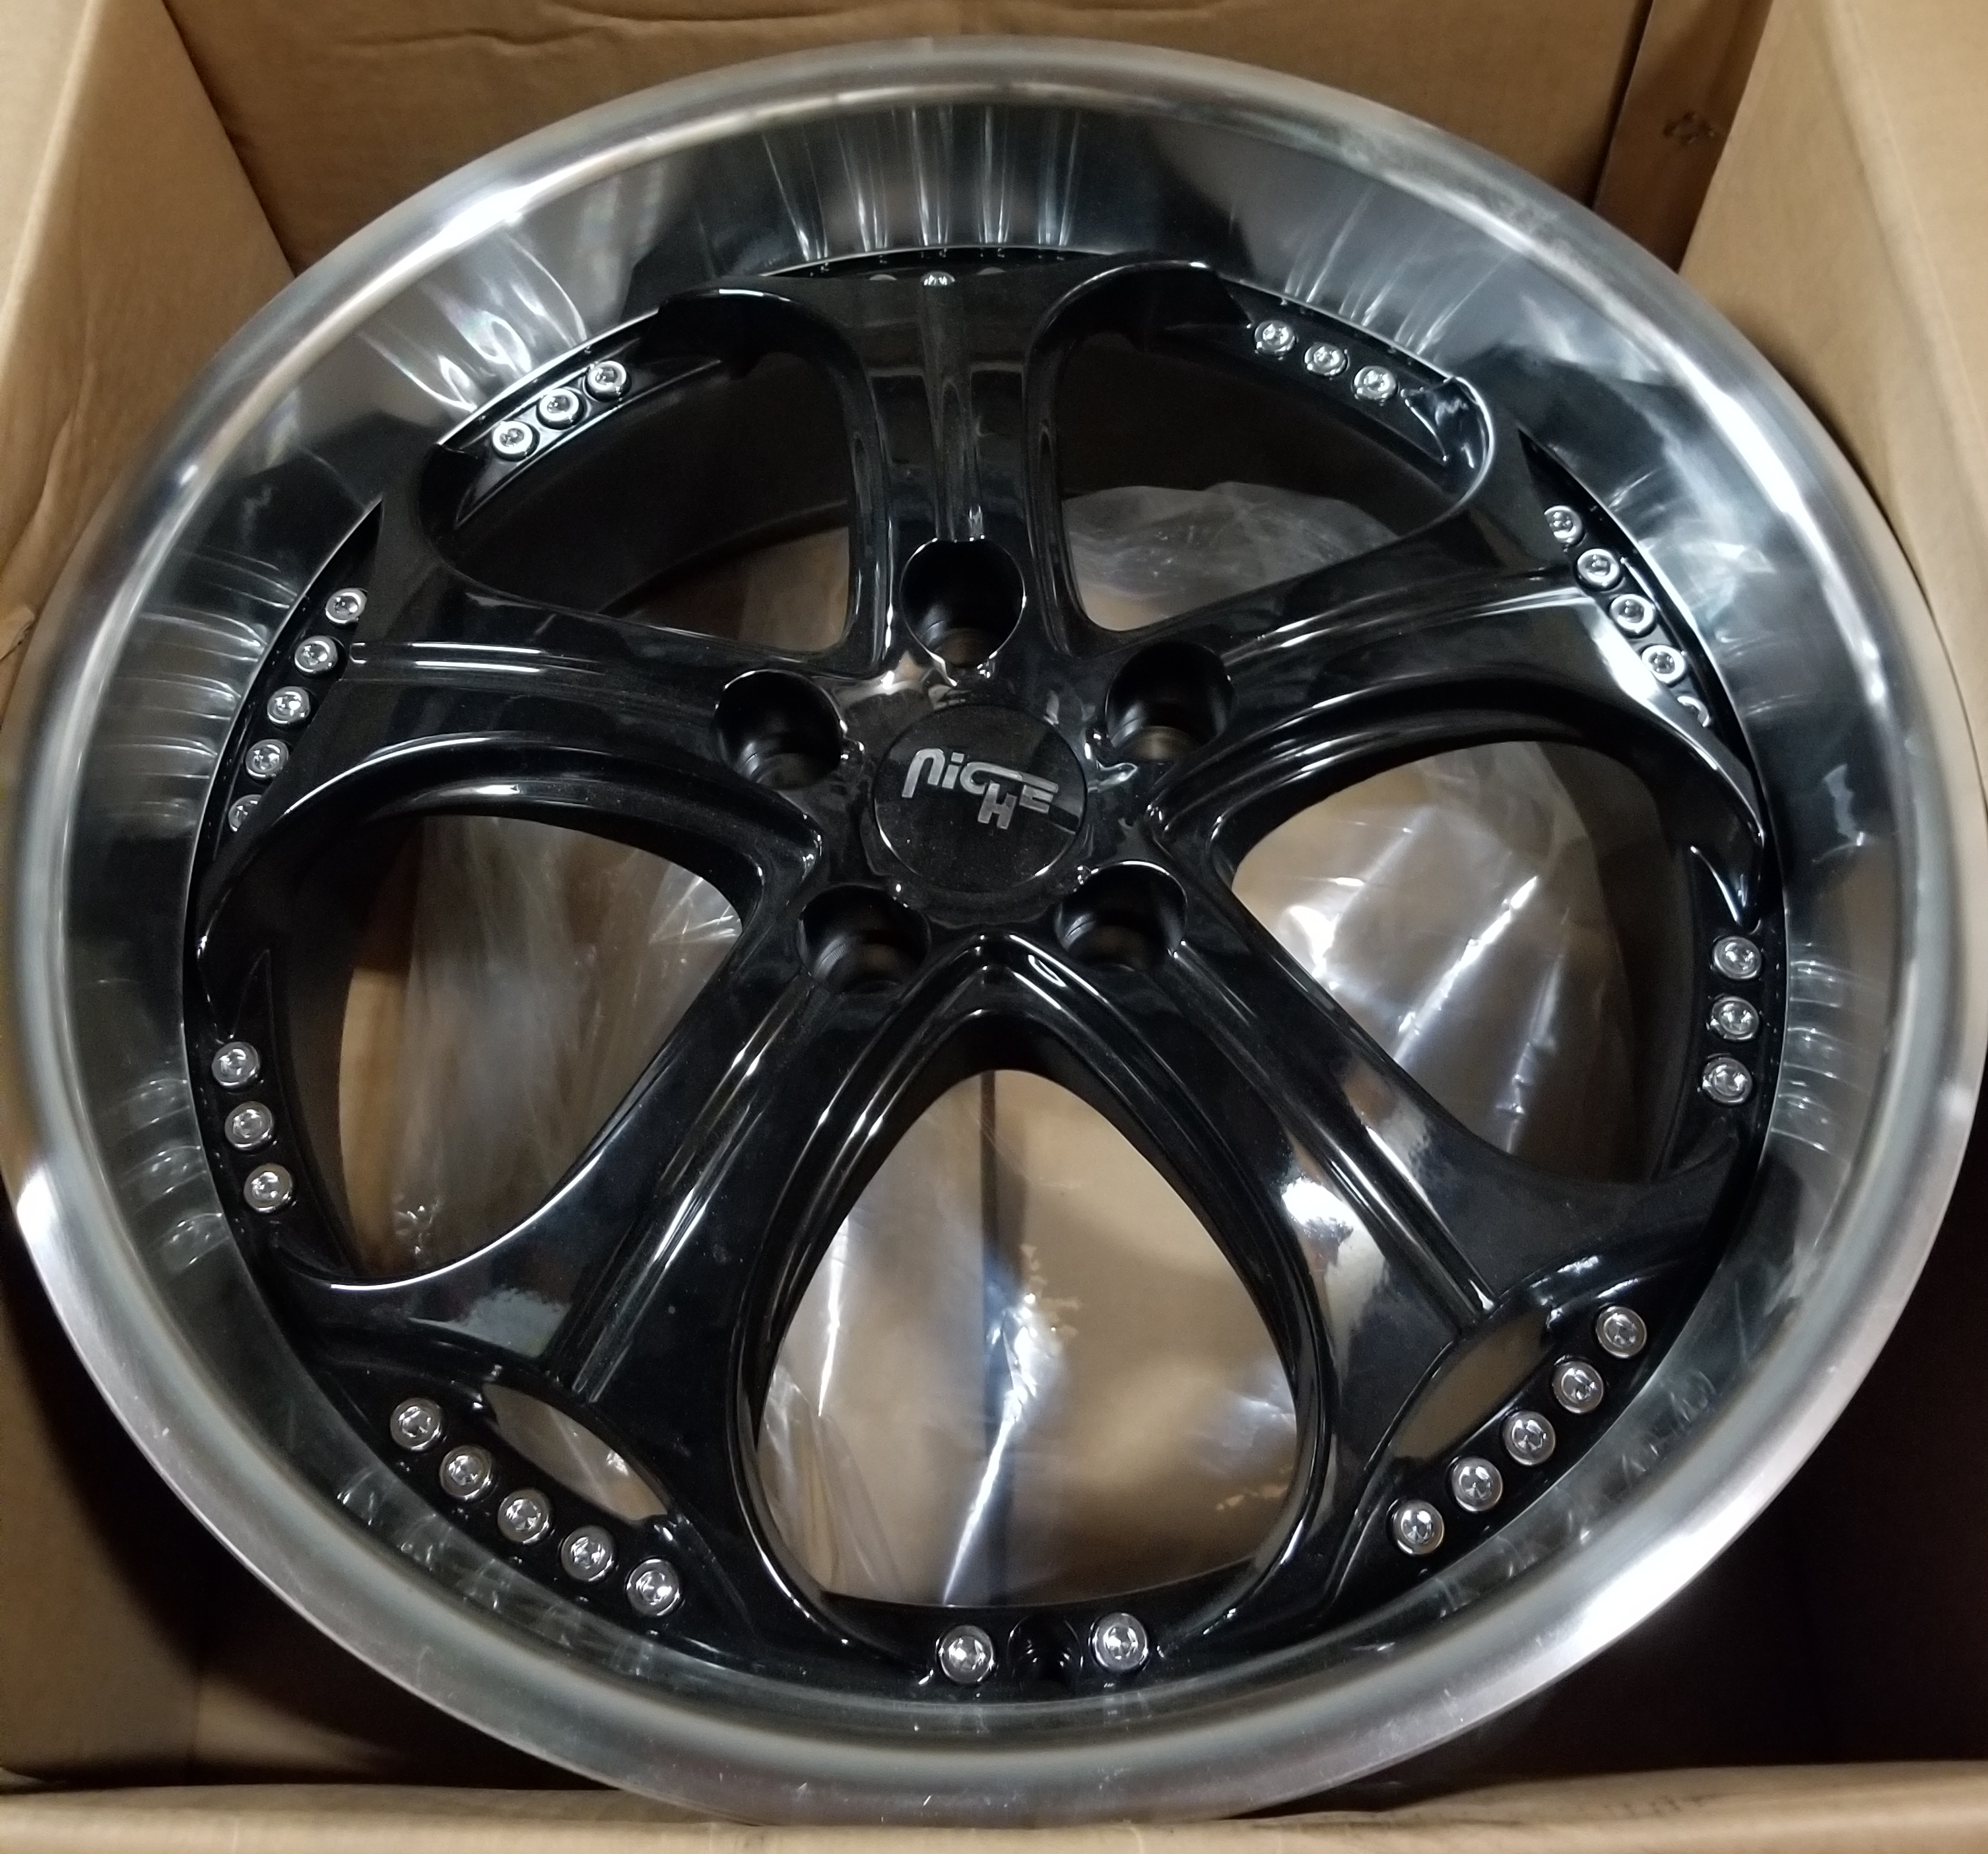 - WHEEL SPECIALS - NICHE GT-P BLACK MACHINED LIP (SOLD AS A SET OF 4)